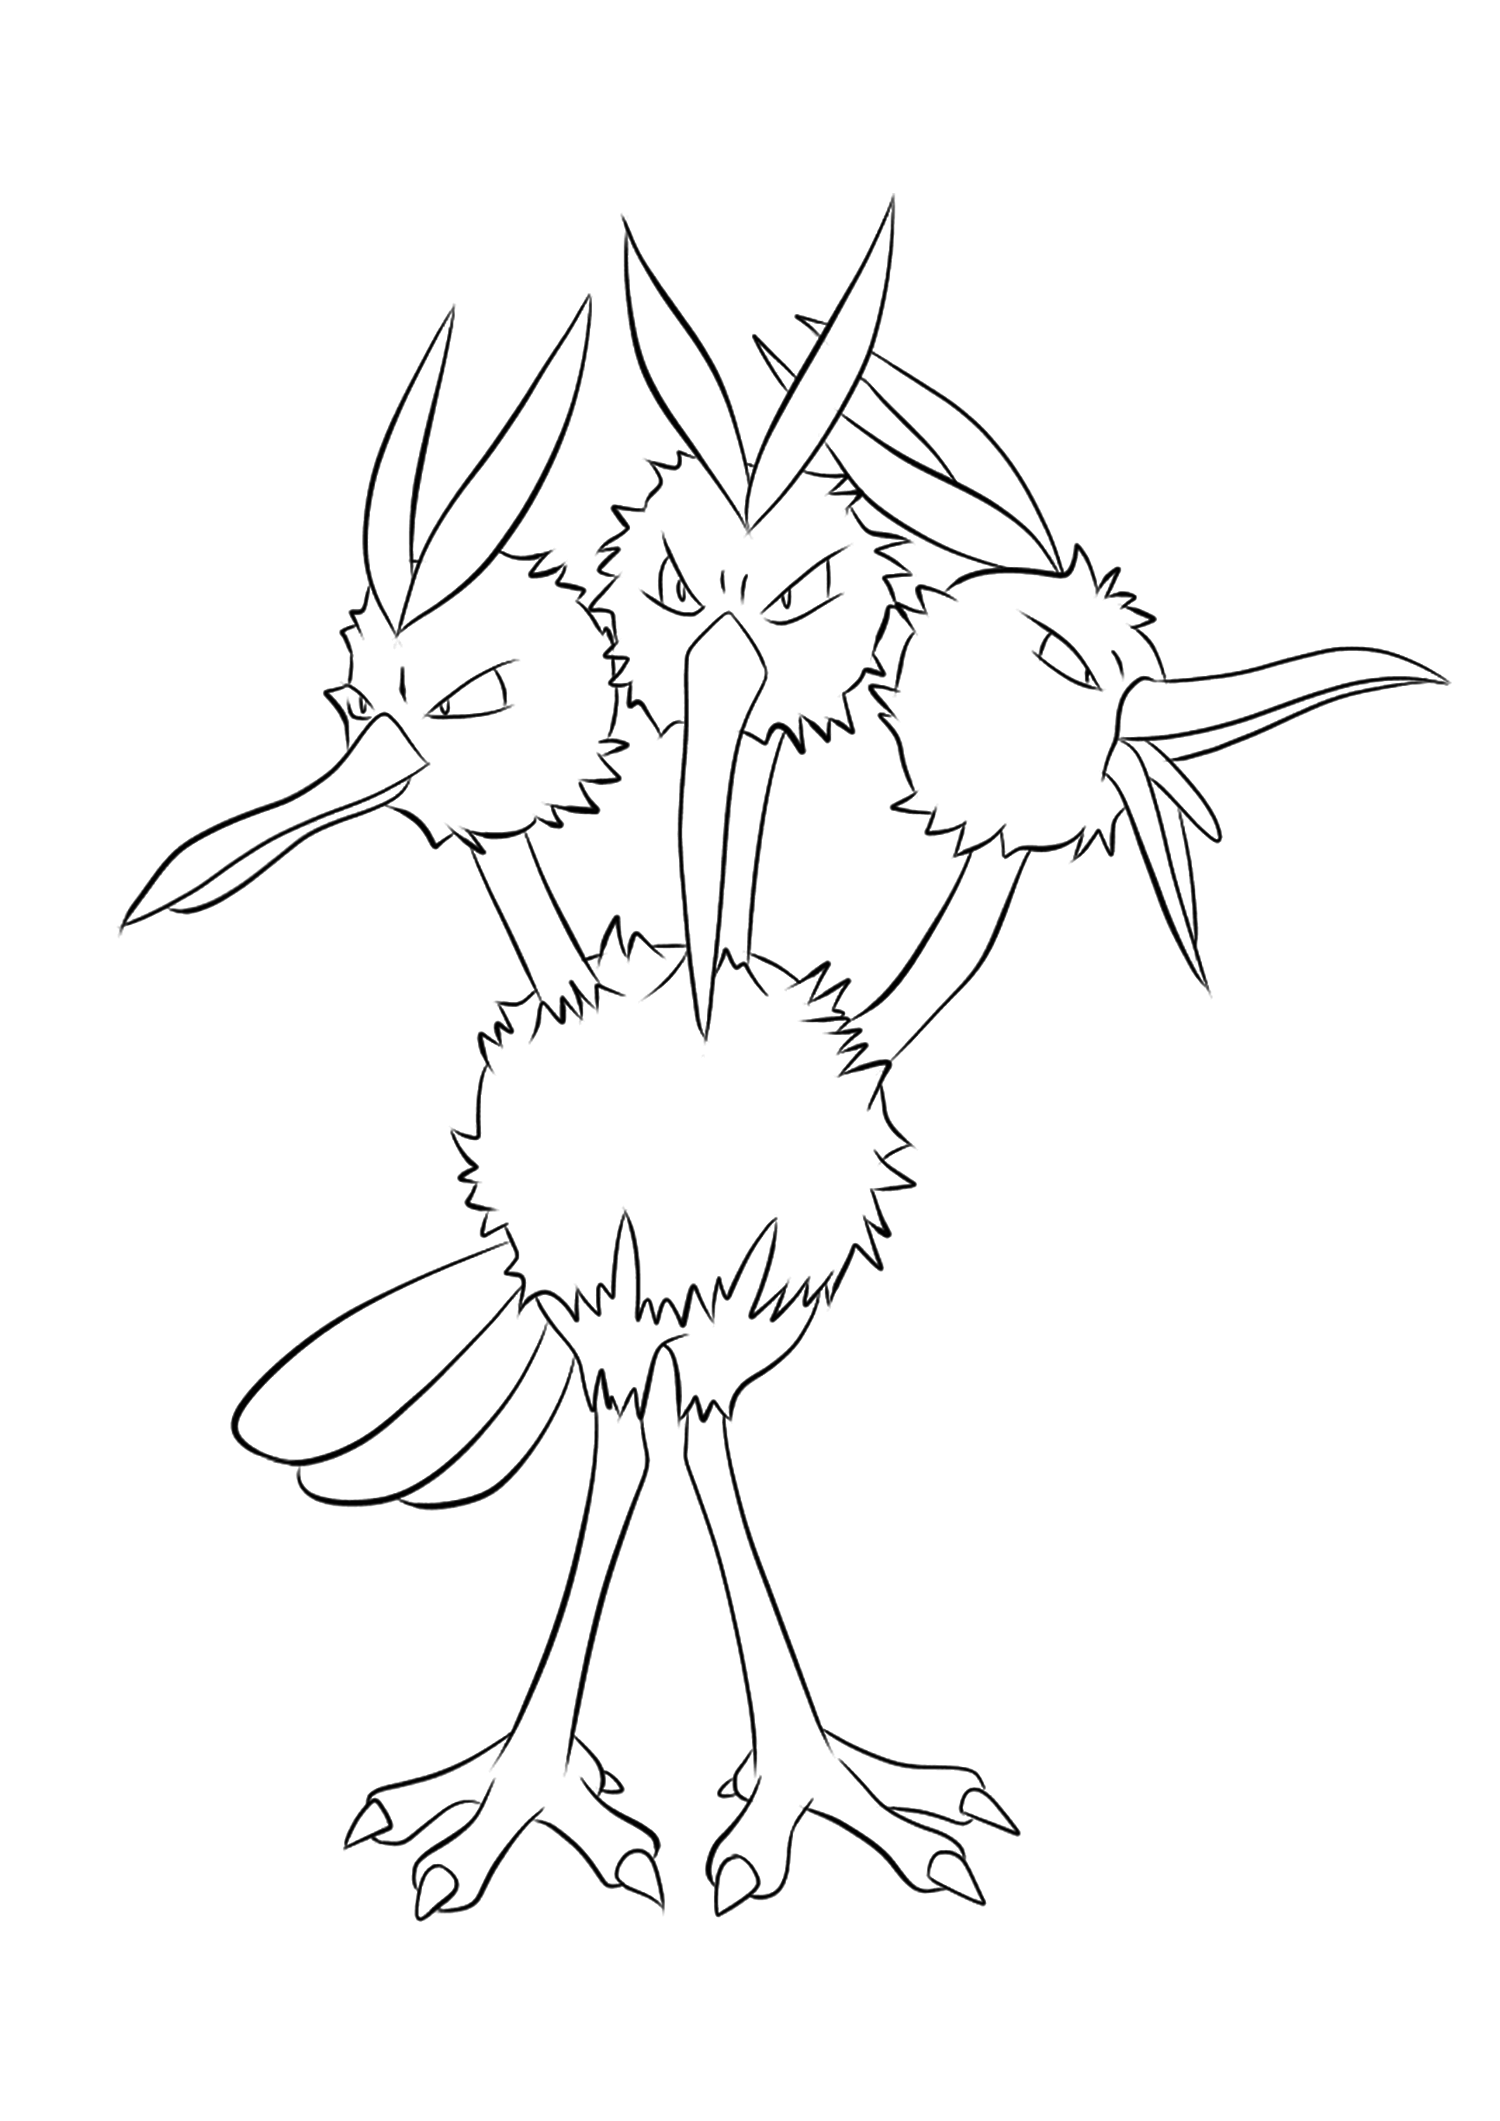 Dodrio (No.85)Dodrio Coloring page, Generation I Pokemon of type Normal and FlyingOriginal image credit: Pokemon linearts by Lilly Gerbil on Deviantart.Permission:  All rights reserved © Pokemon company and Ken Sugimori.